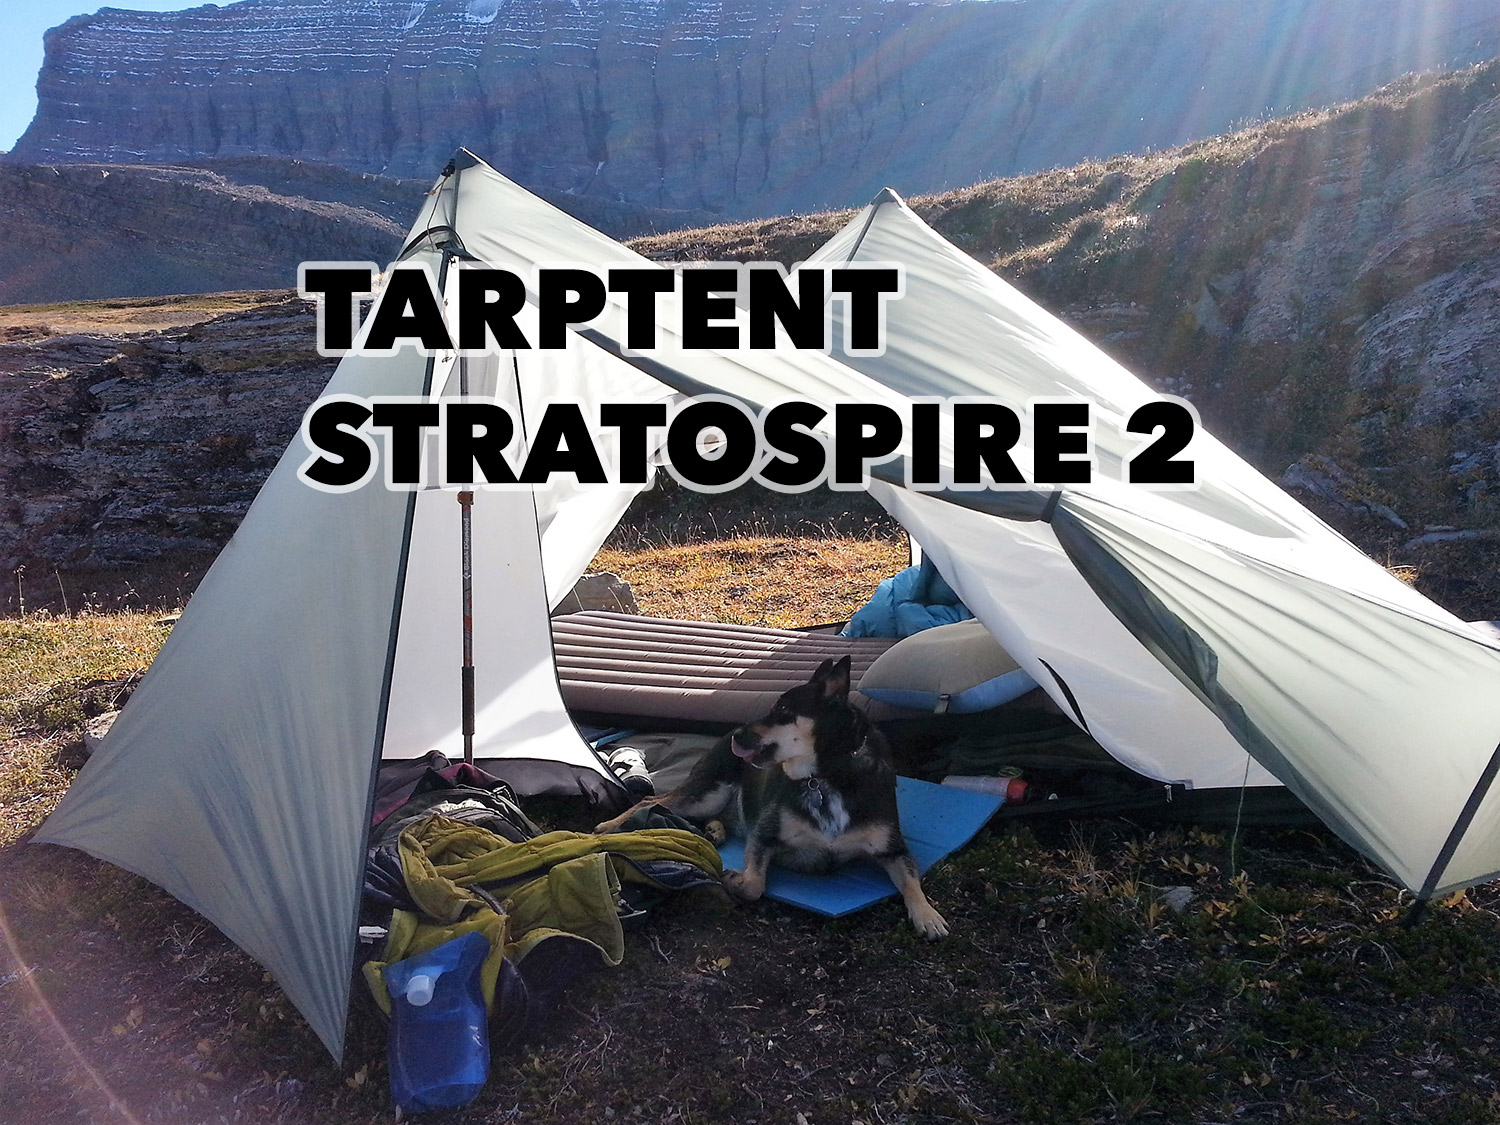 TARPTENT STRATOSPIRE 2 REVIEW